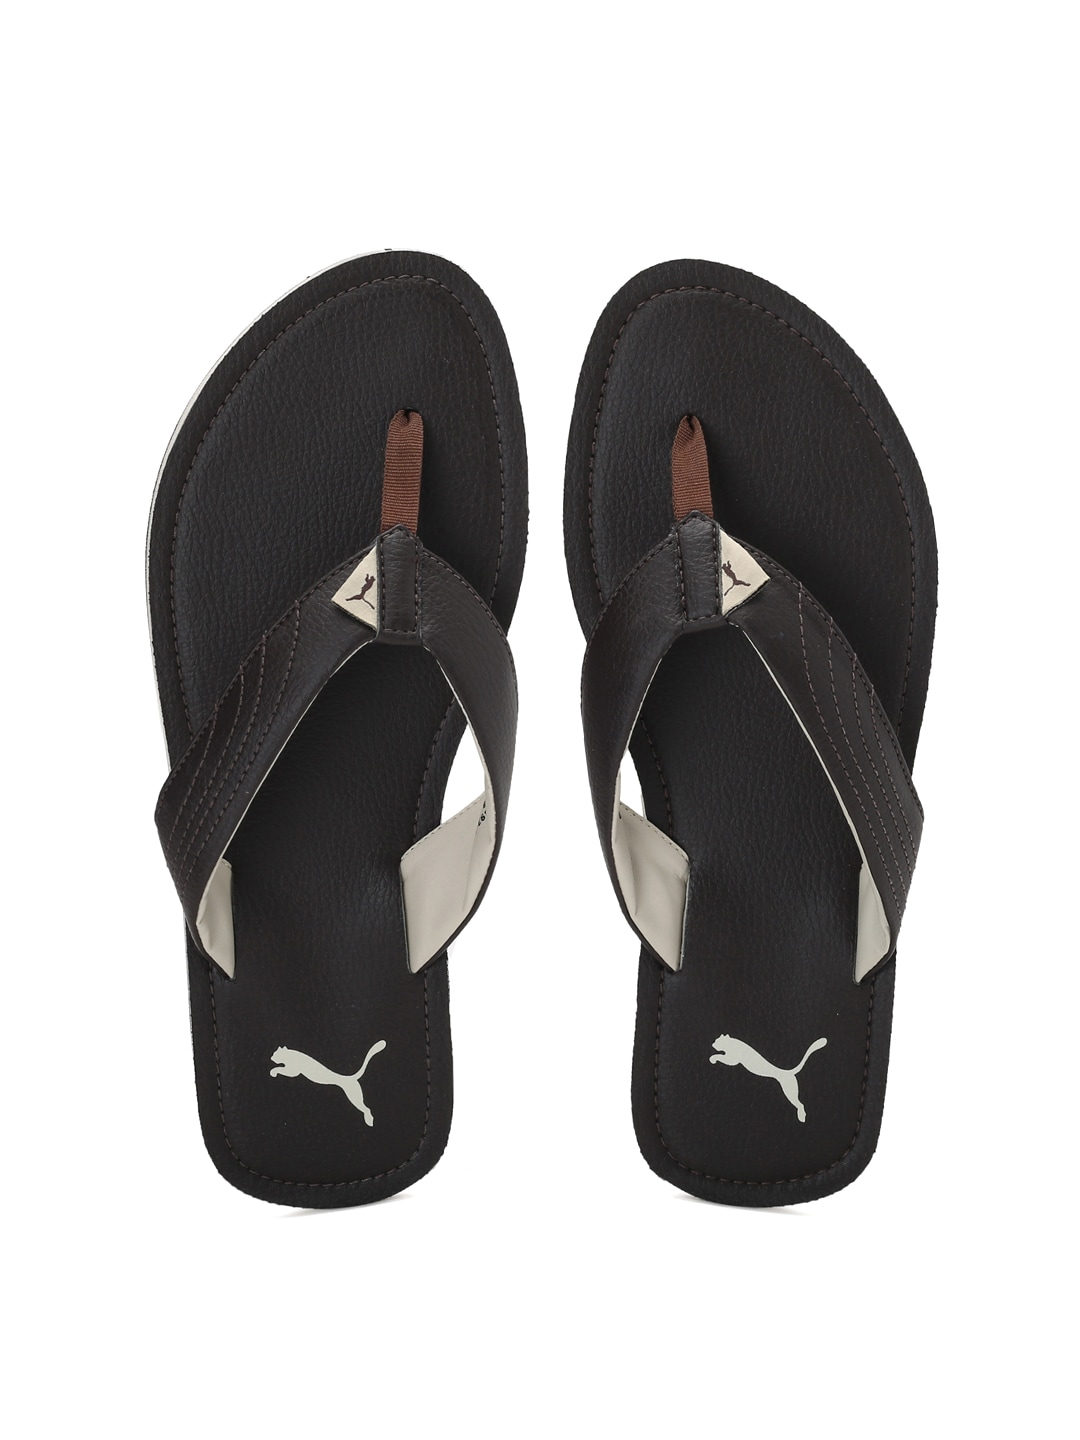 803dee736 Puma Men Flip Flop - Buy Puma Men Flip Flop online in India